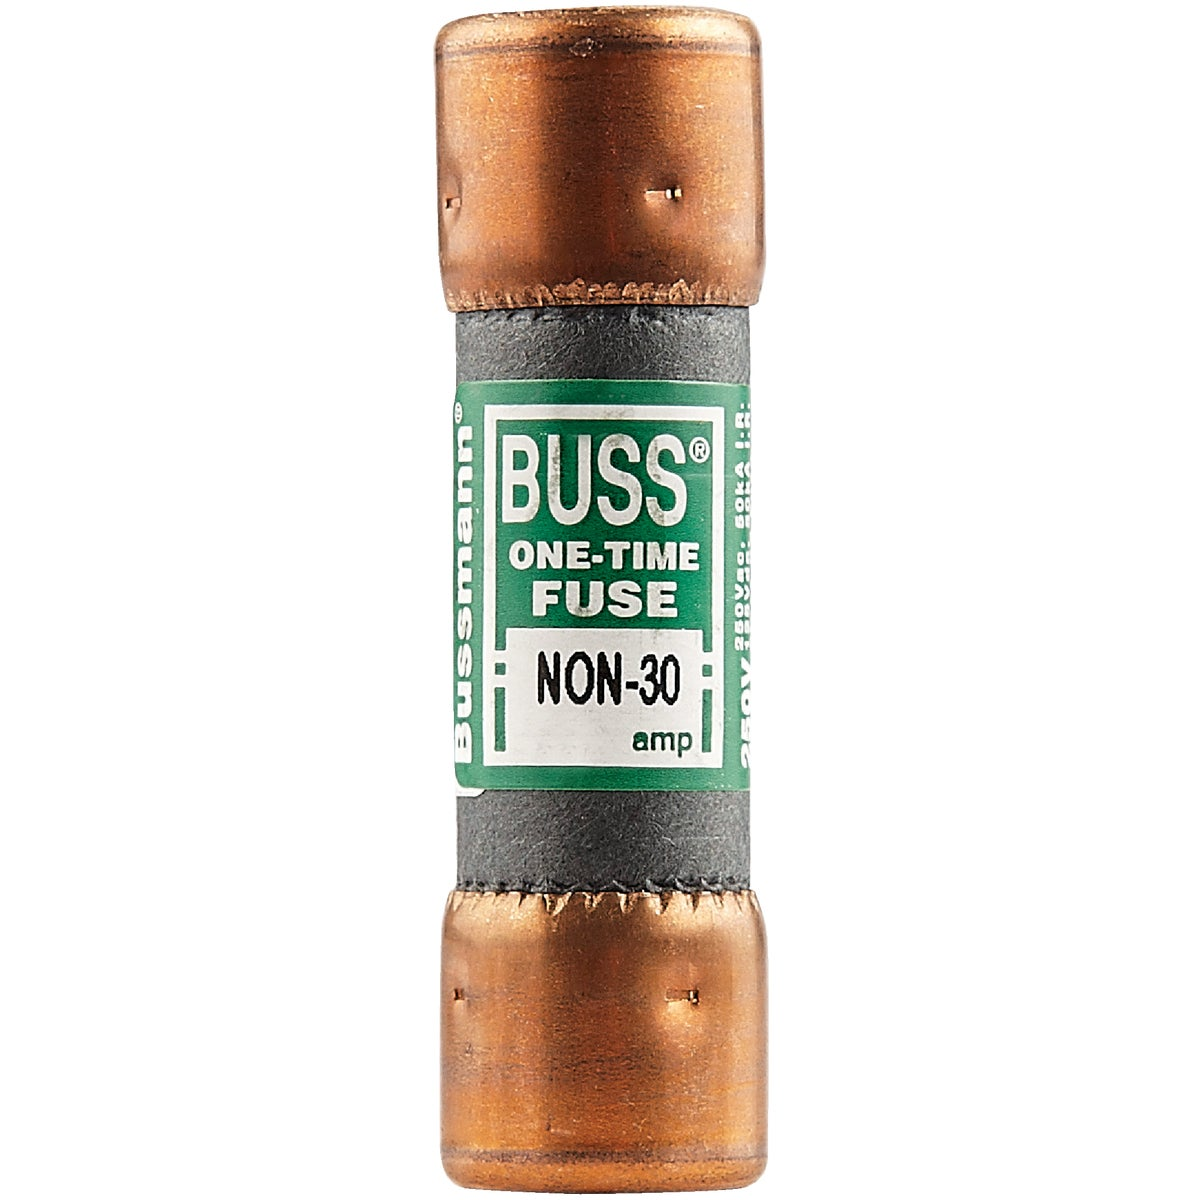 10A NON CARTRIDGE FUSE - NON-10 by Bussmann Cooper